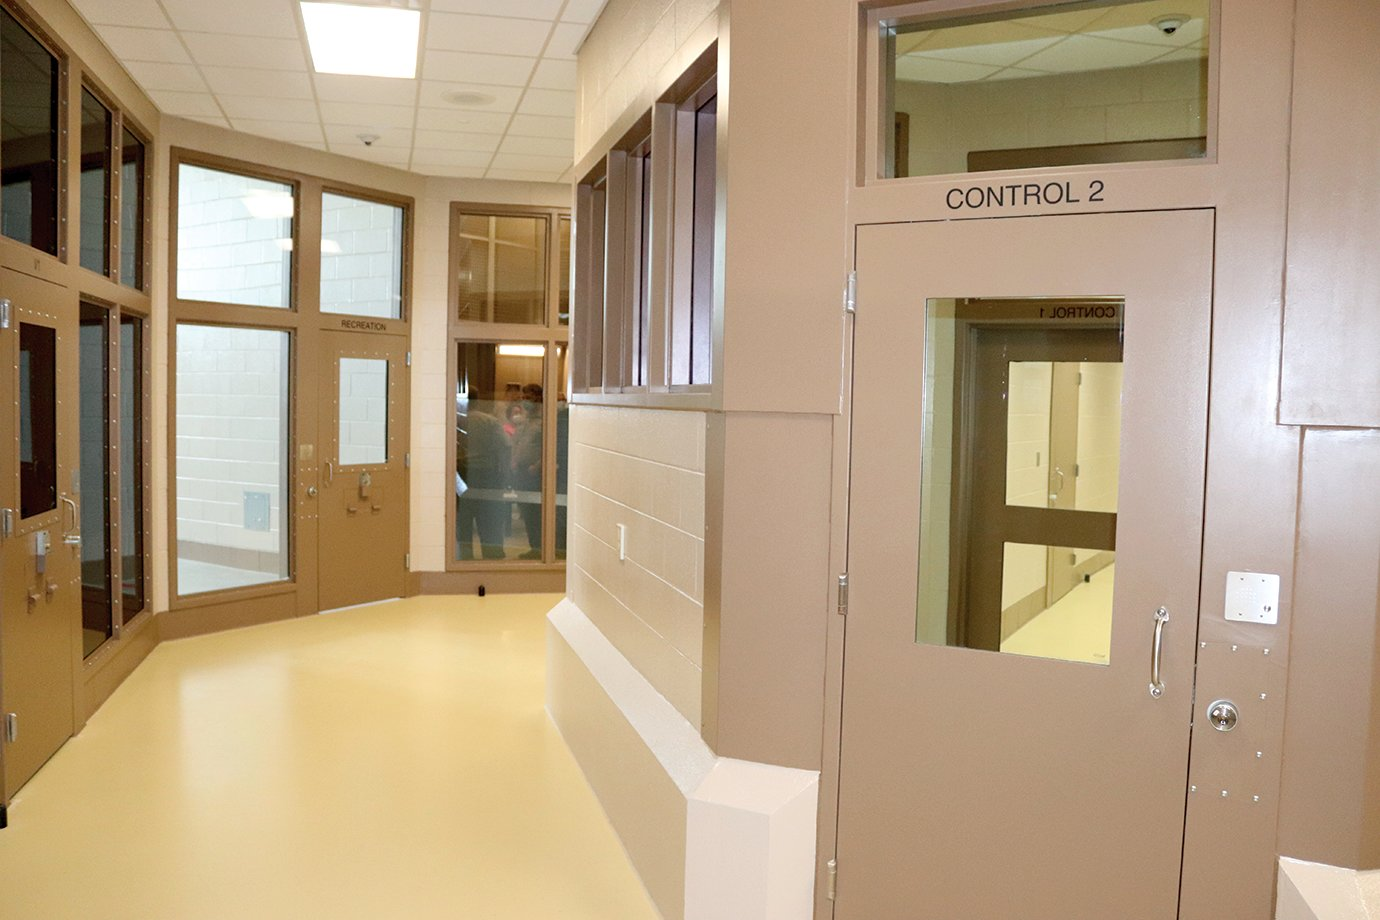 A secured control center sits in the middle of the cell block wing of the new Fountain County Jail. From there, jail staff can operate any door in the wing electronically while maintaining visual contact at all times.